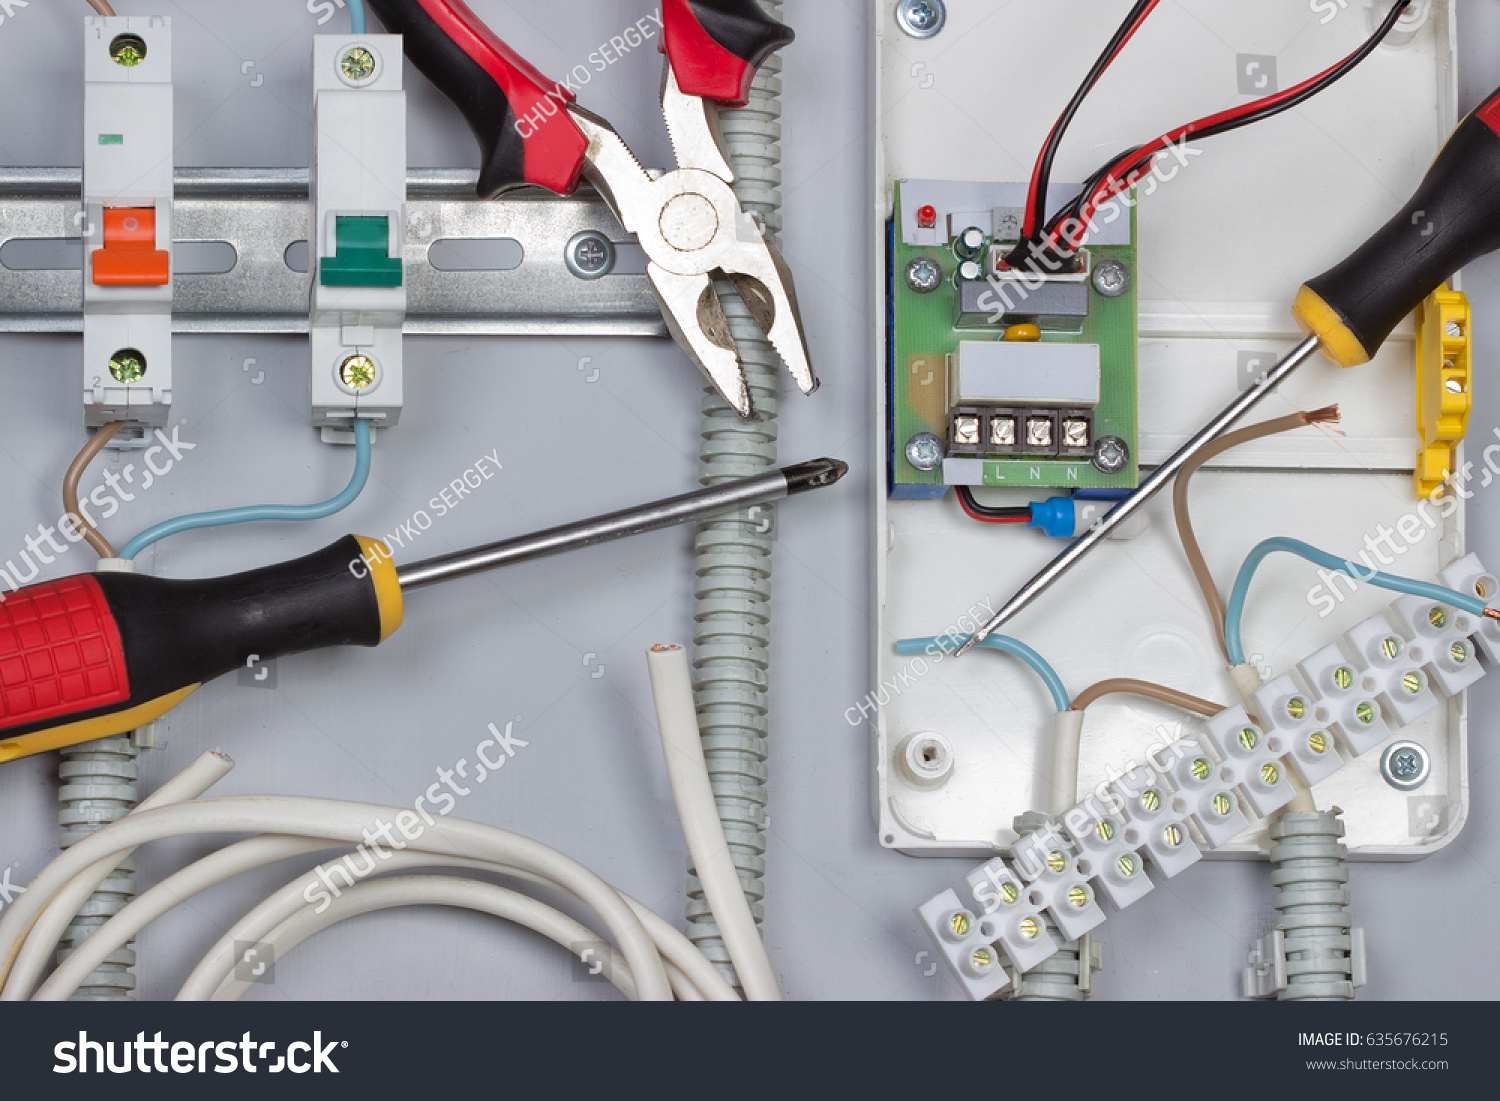 Installation Electrical Devices Wires Distribution Board Stock Photo Wiring Of In